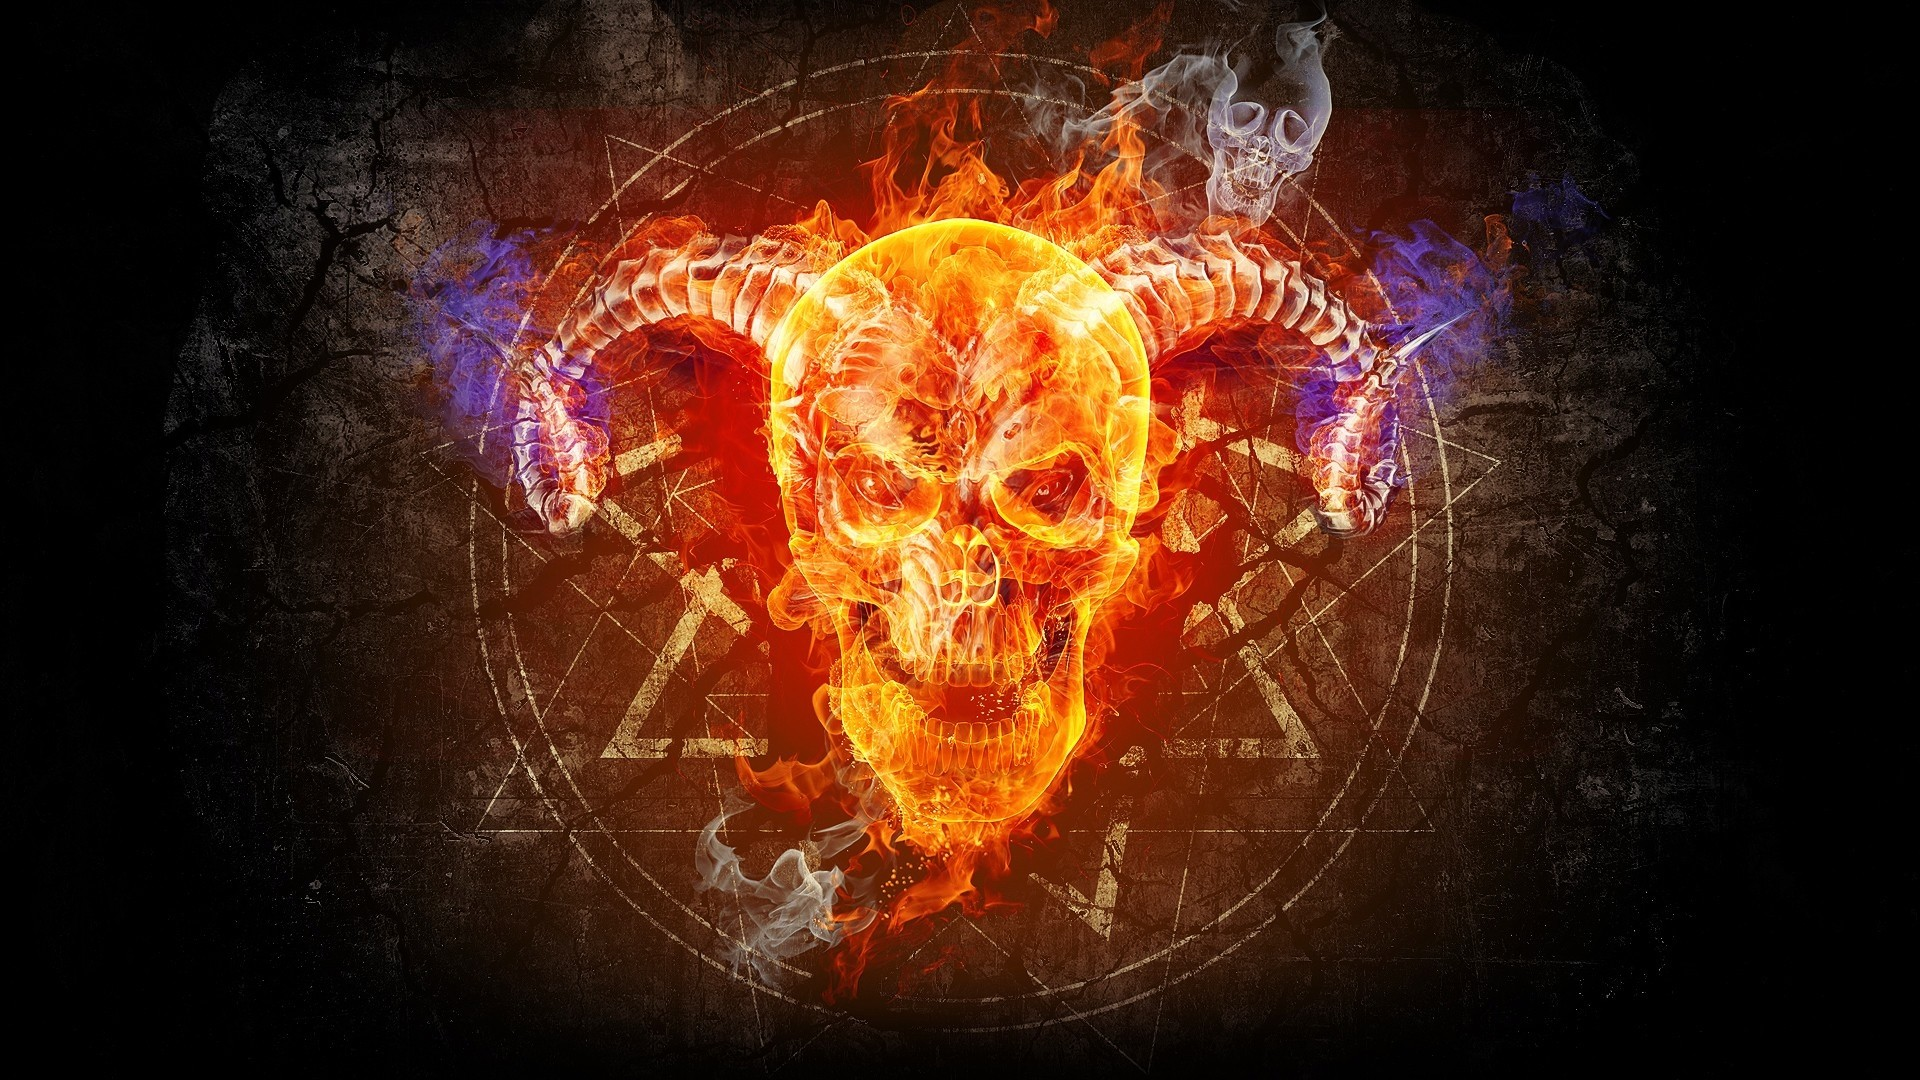 Skull and crossbones blue fire